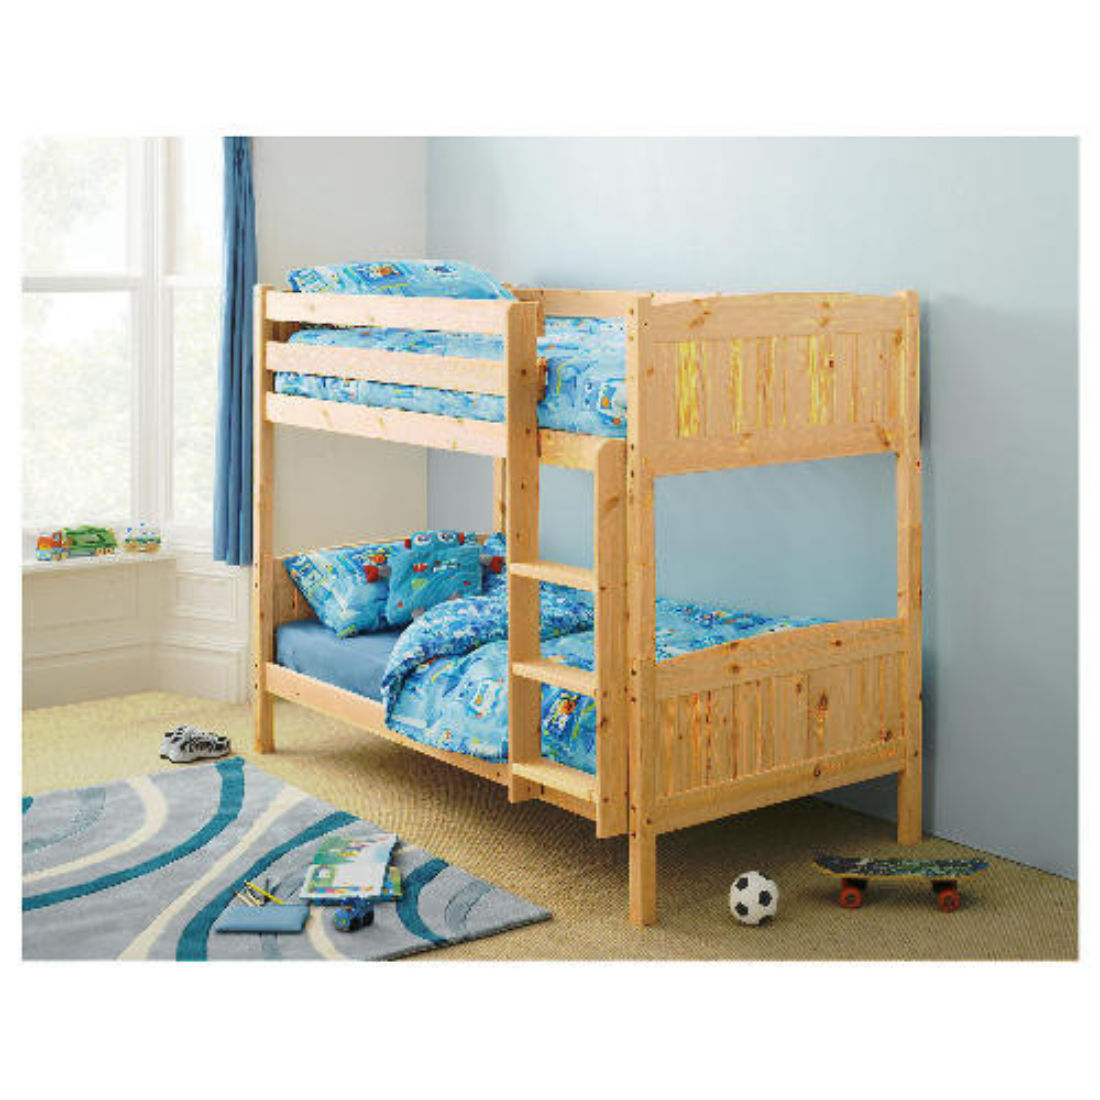 Shorty Bunk Beds With Mattresses Shorty mattress to fit Ashley Pine Detachable Bunk Bed mattress size ...